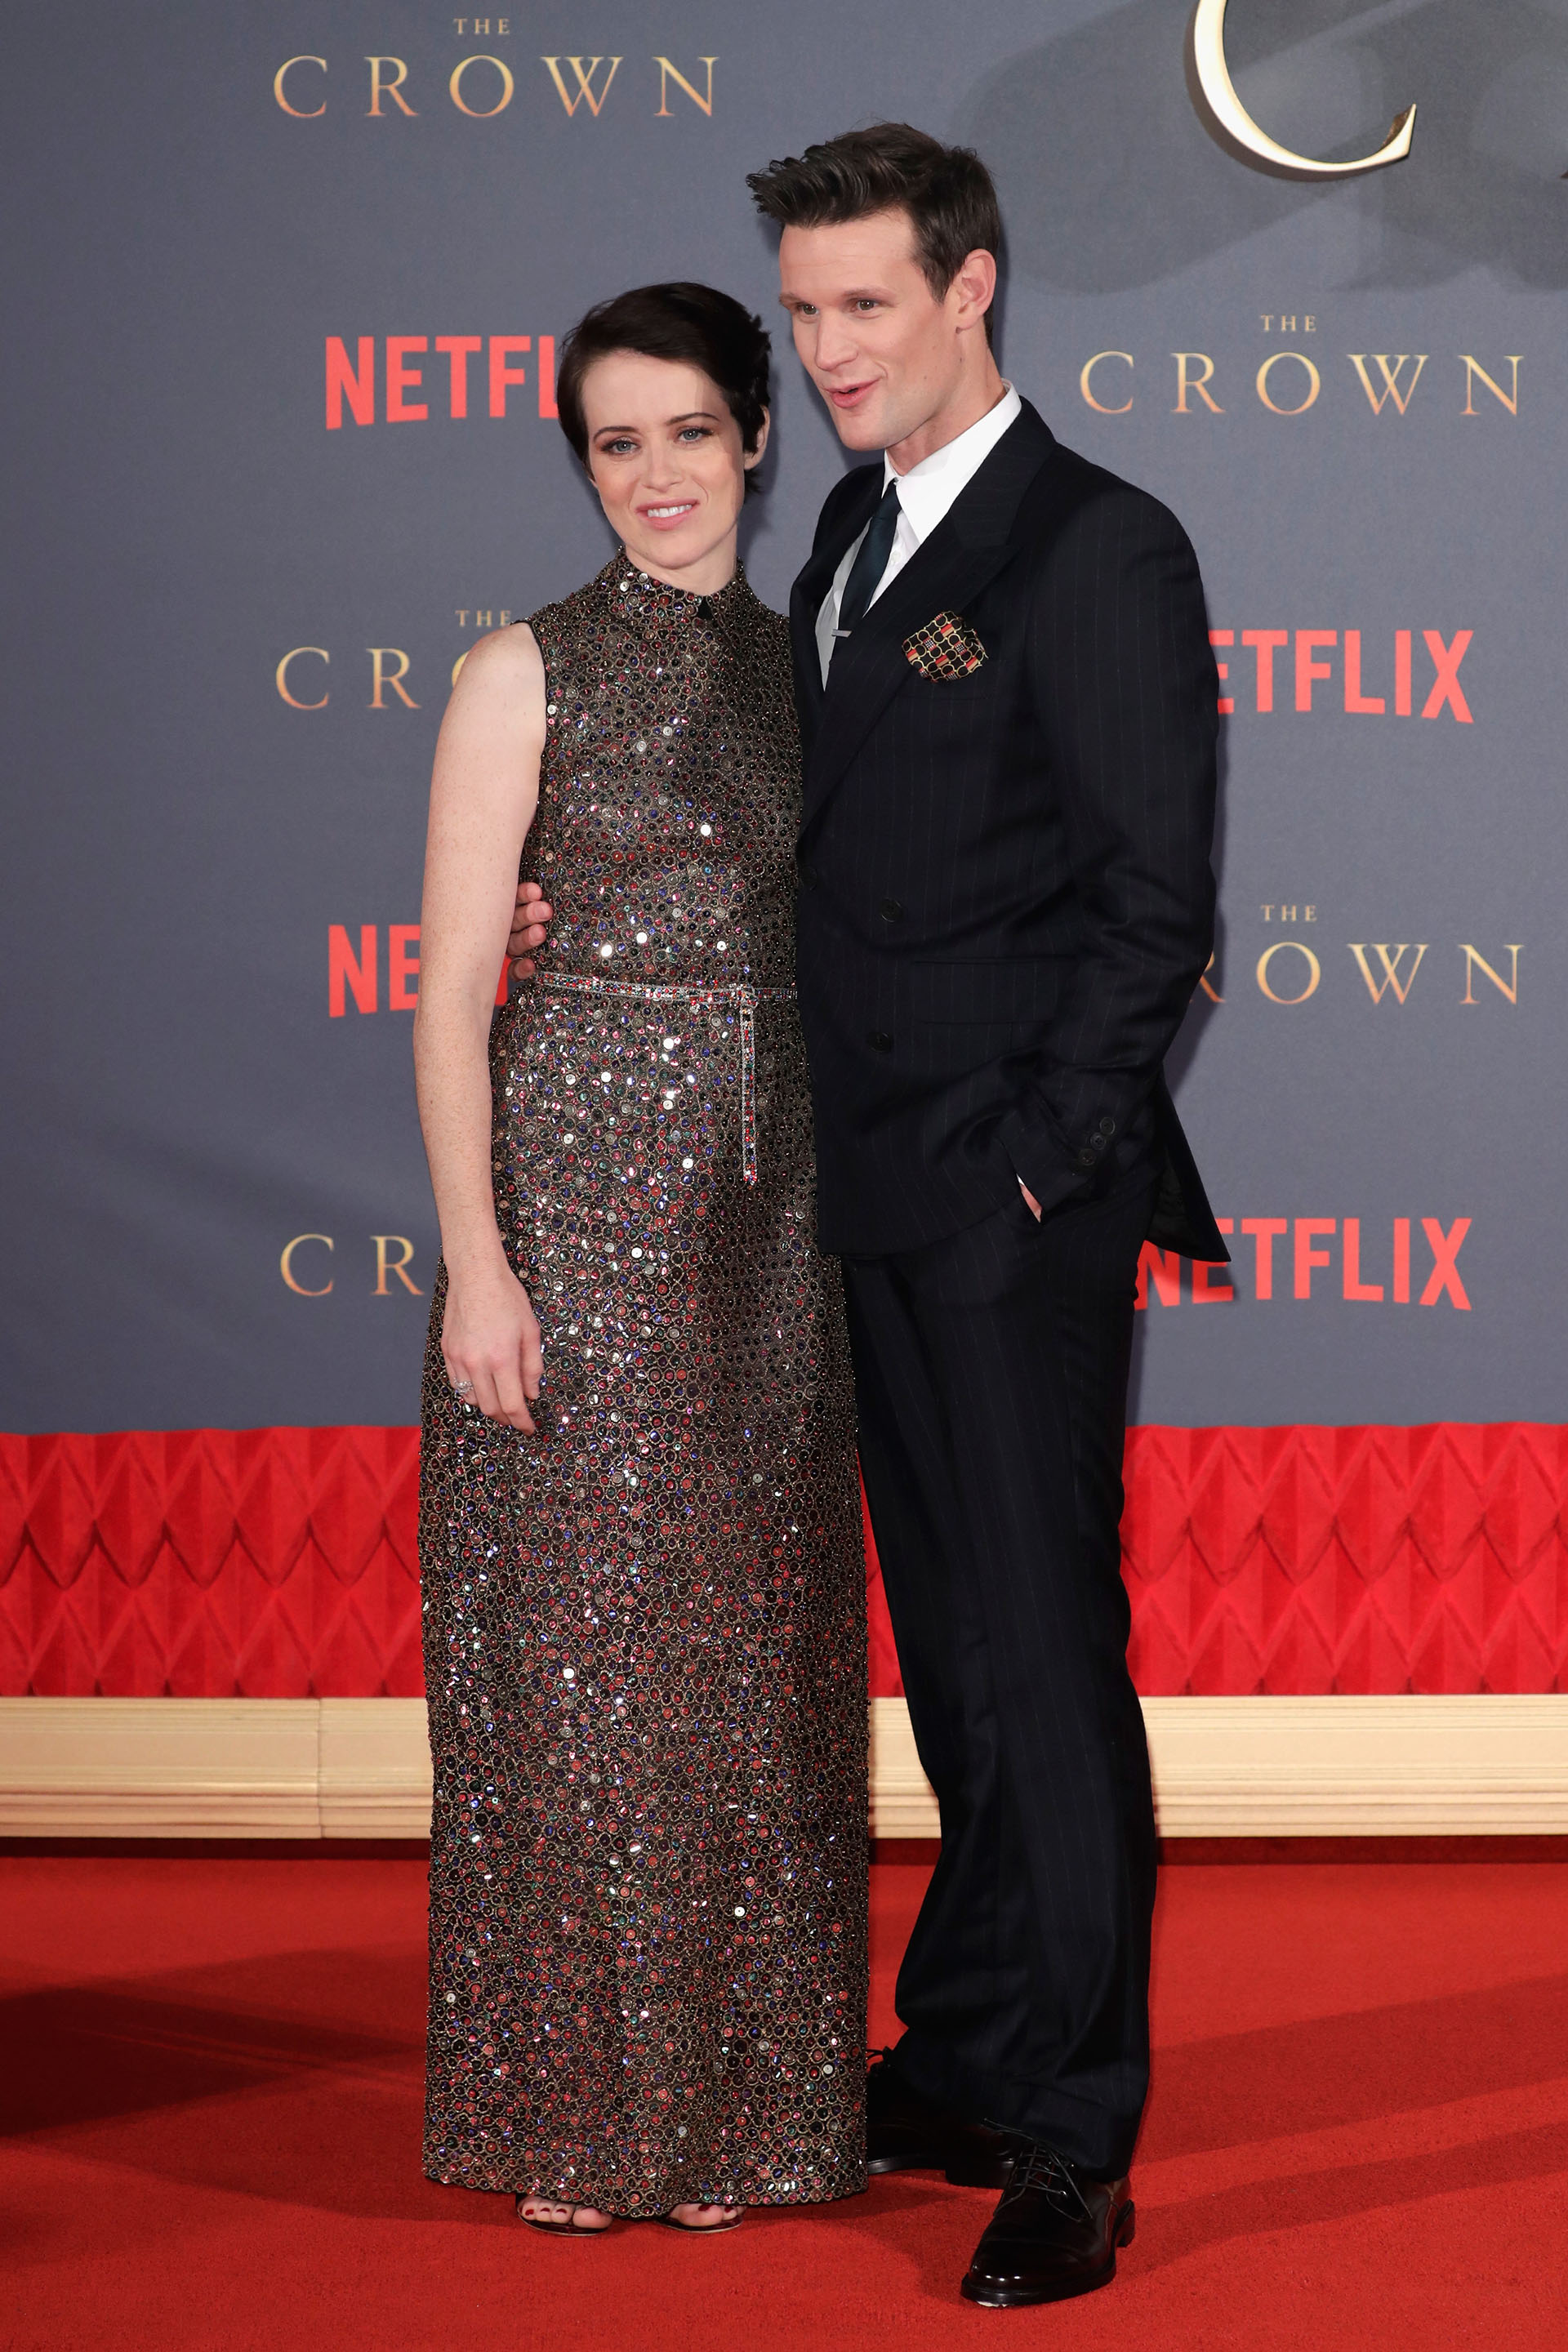 Claire Foy y Matt Smith: la reina y su marido en The Crown